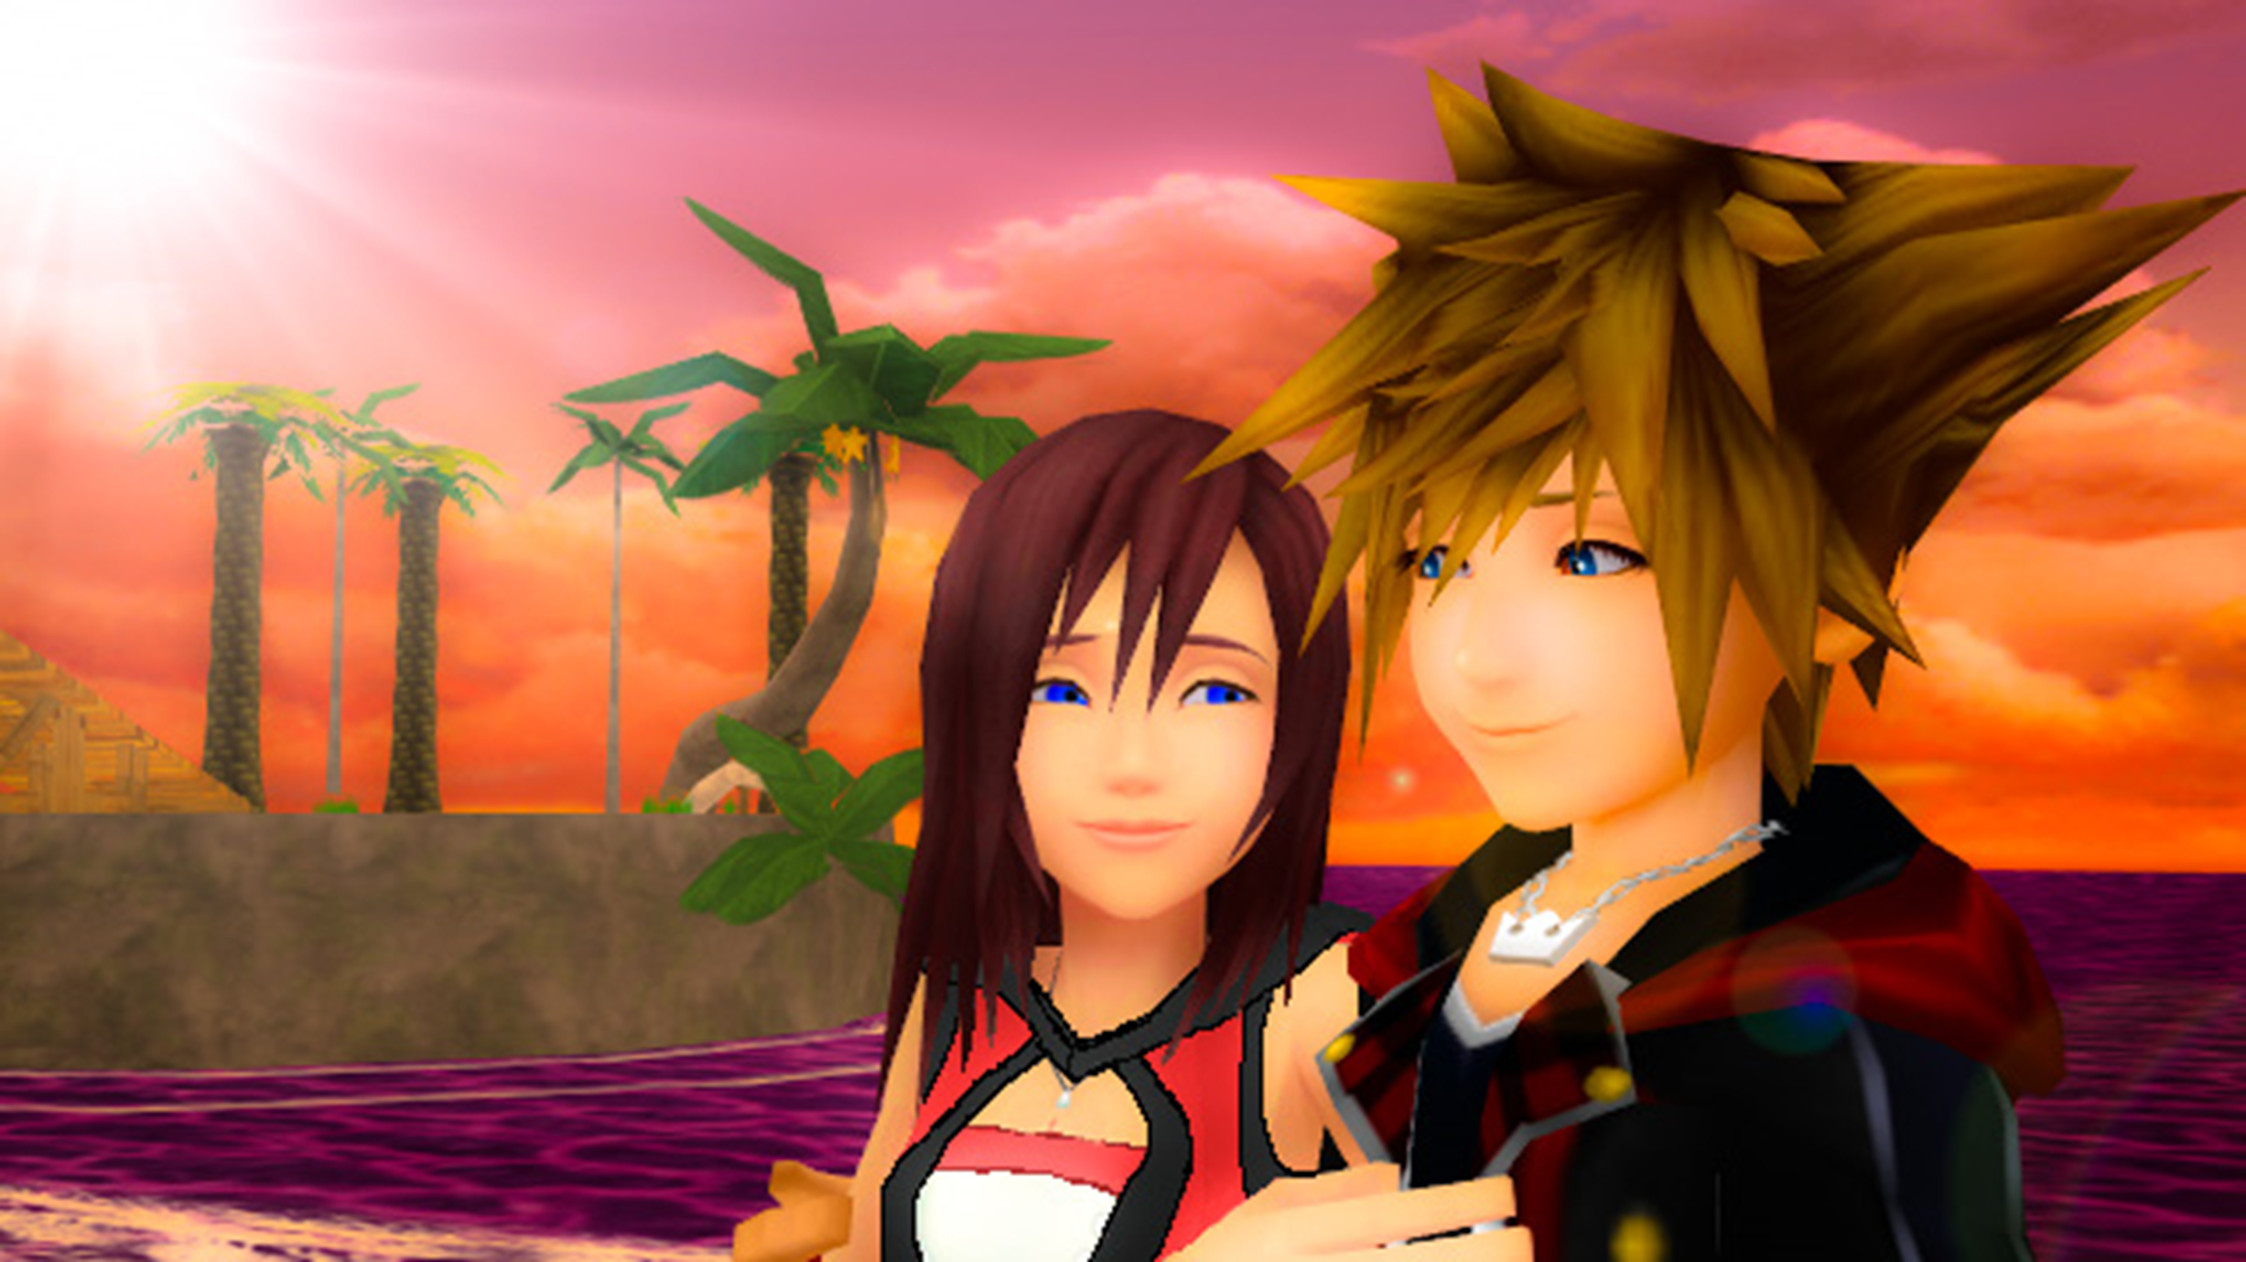 Res: 2246x1262, ... We Made a Promise Sora x Kairi KH3... by 9029561